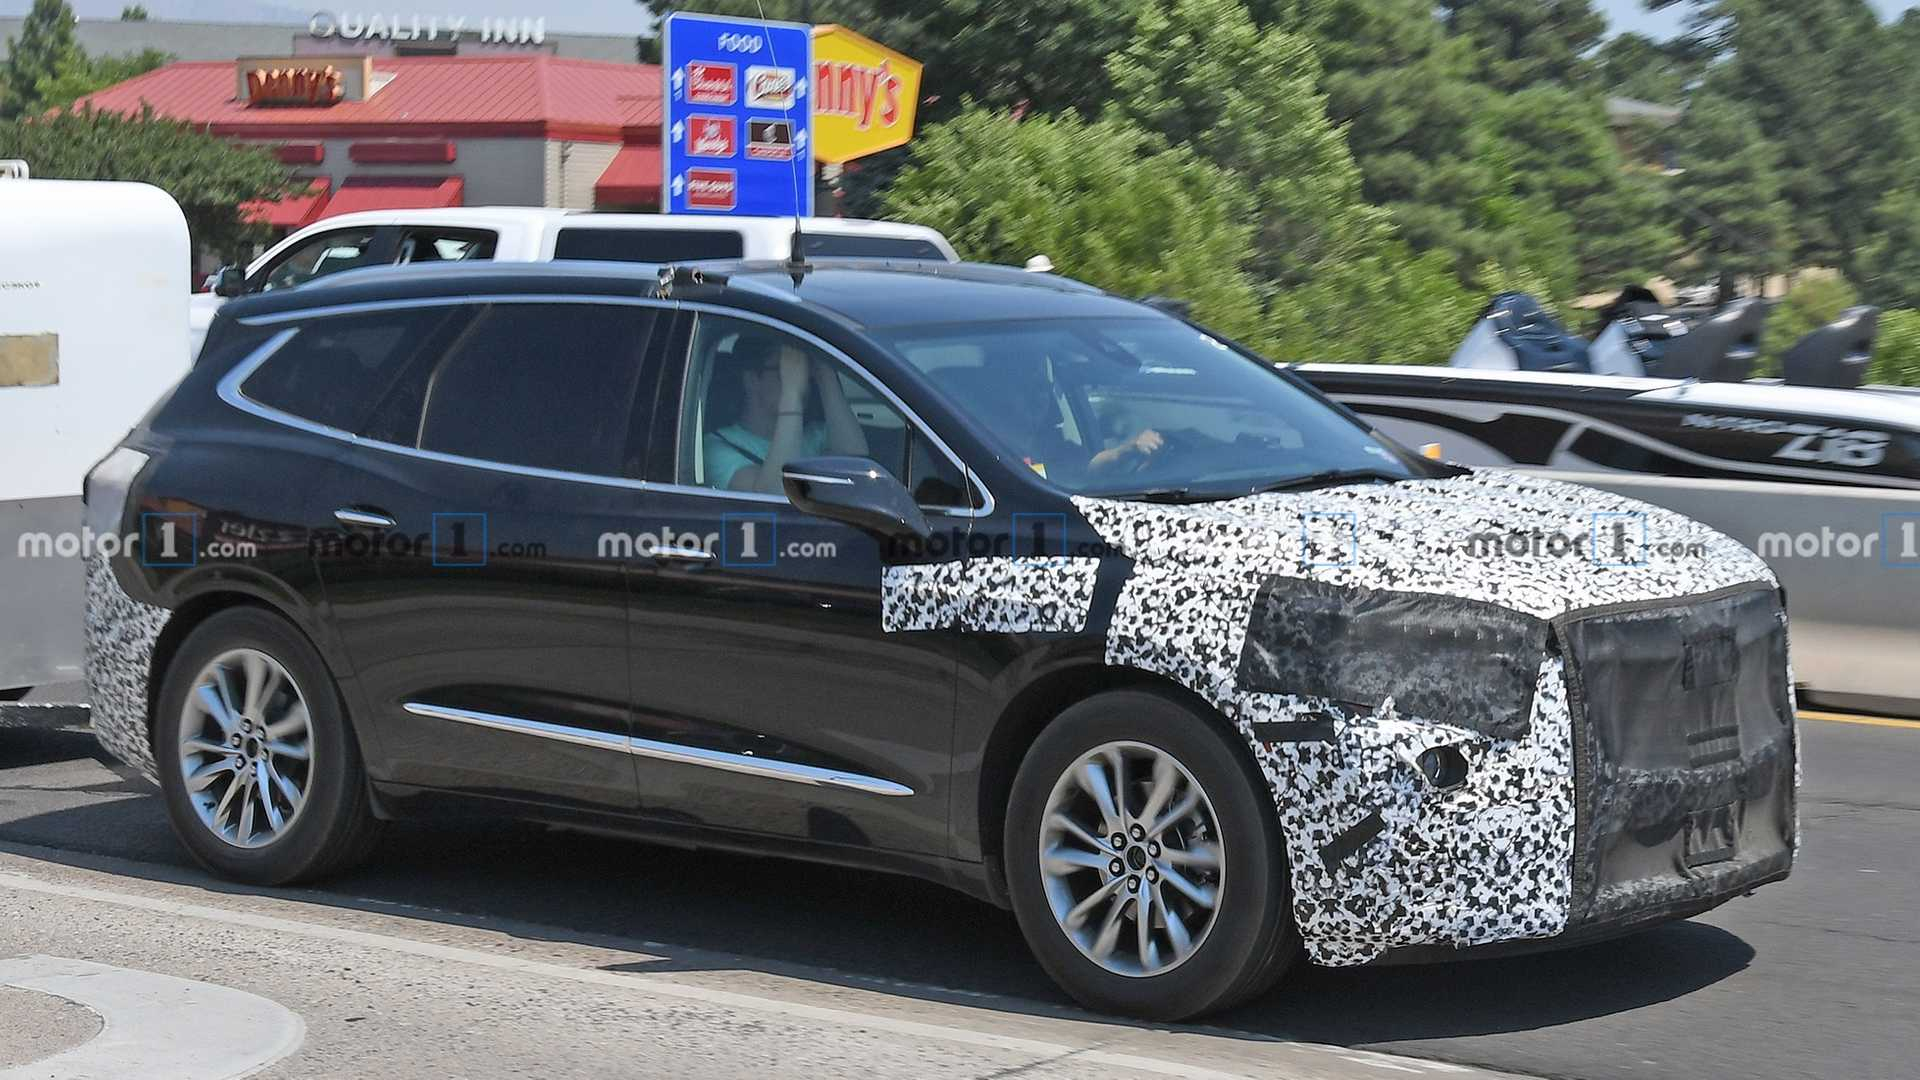 2021 Buick Enclave Spied For The First Time Build A 2021 Buick Enclave Avenir